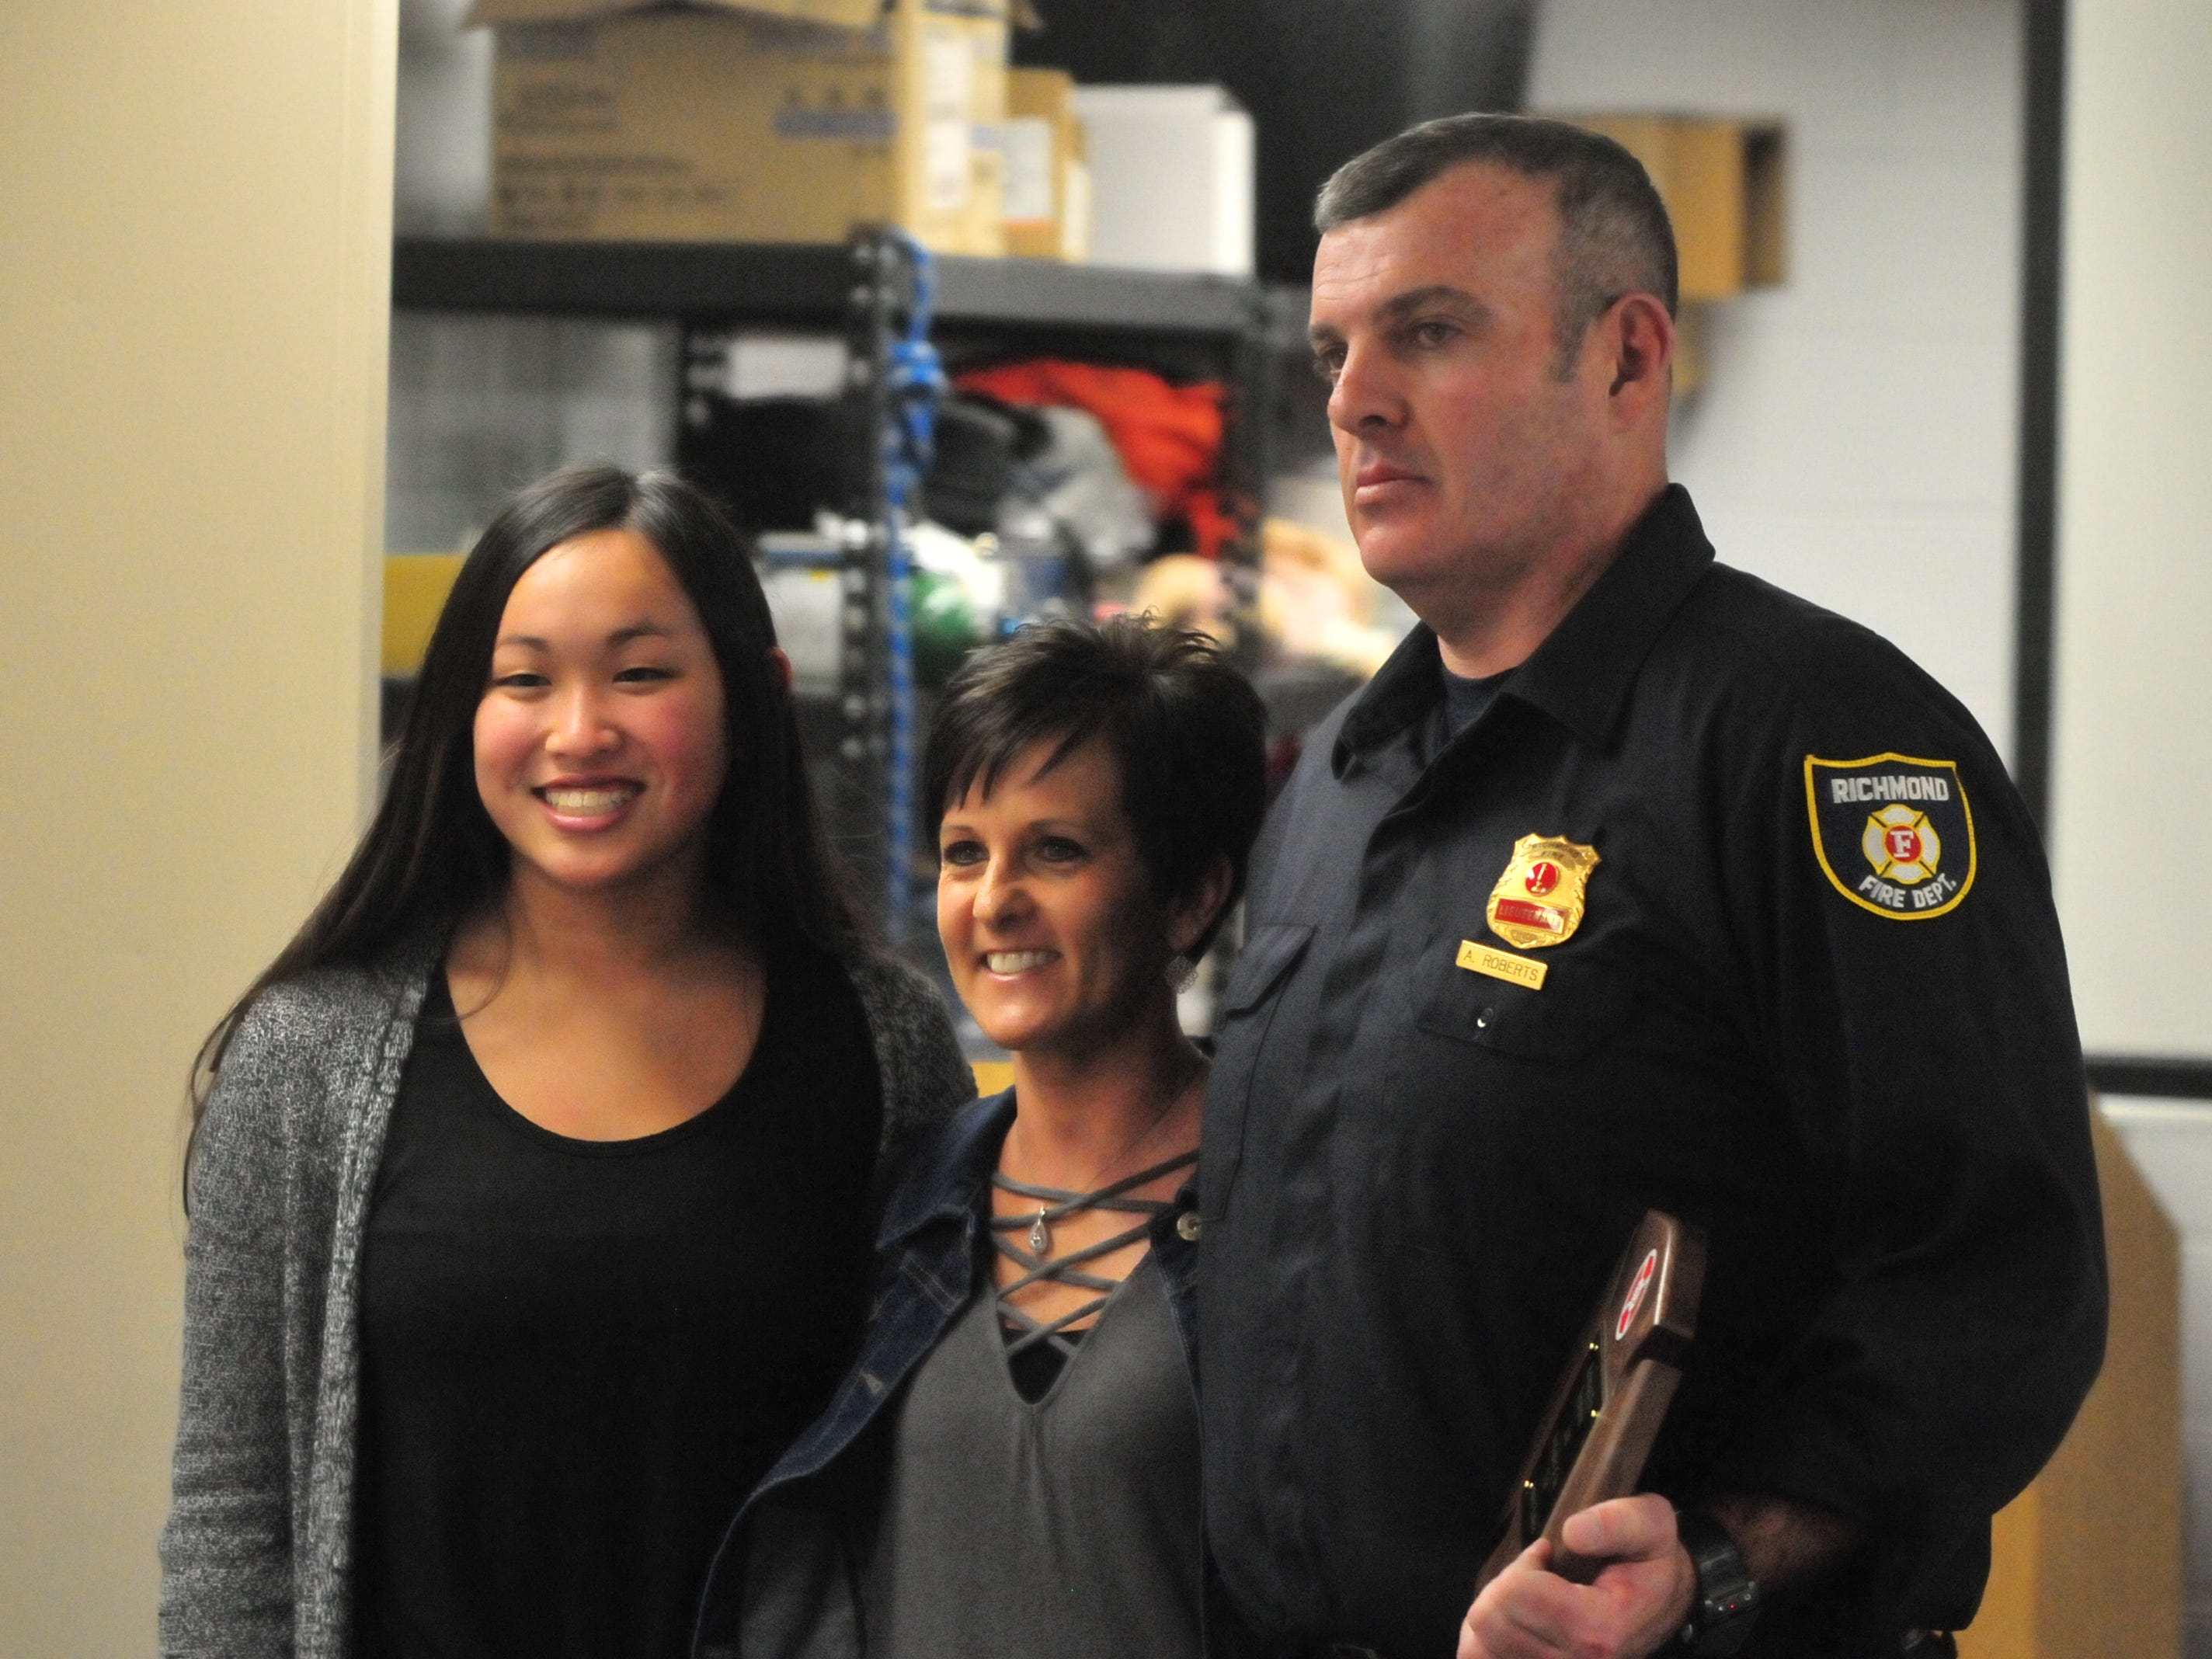 Lt. Andrew Roberts poses with his daughter Jayda (left) and wife Melanie after he was chosen Richmond Fire Department's Firefighter of the Year for 2018.